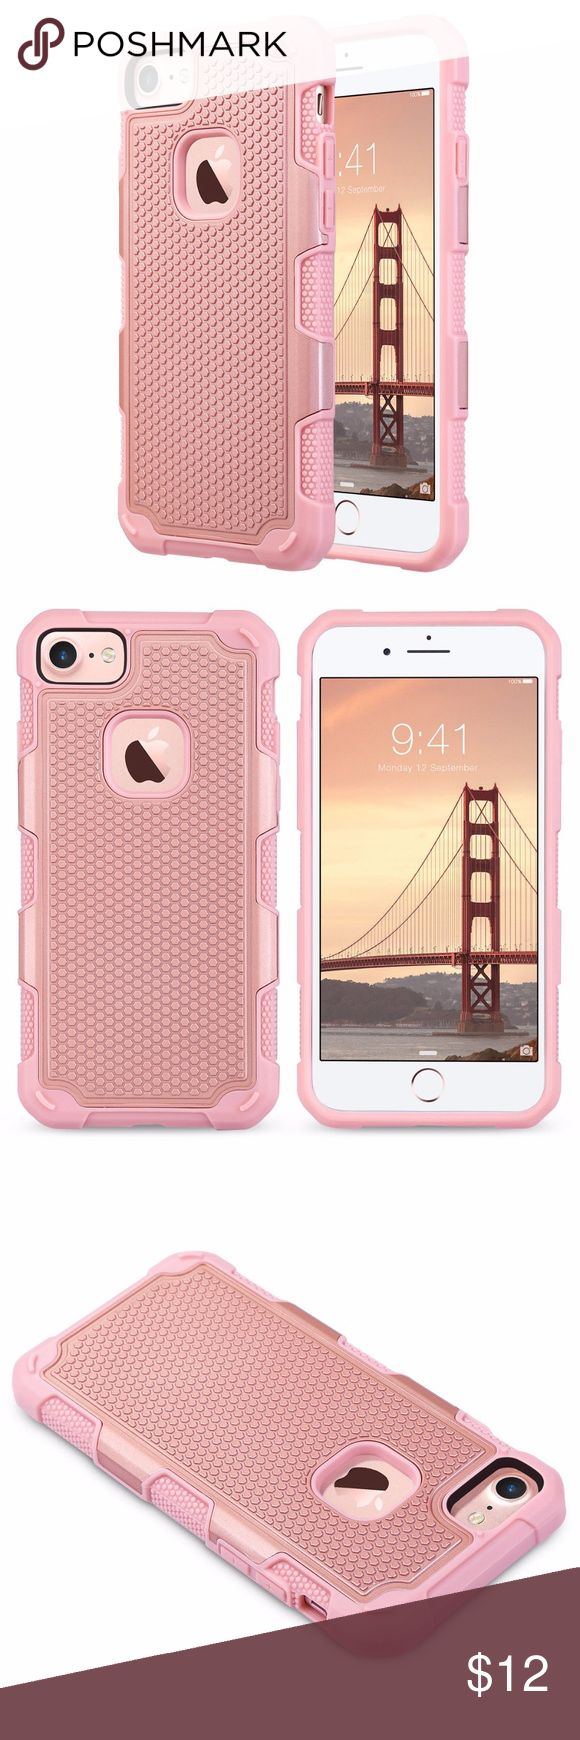 iPhone 7/8 Heavy Duty Rose Gold Shockproof Cover For iPhone 7/iPhone 8 case compatible with Apple iPhone 7/iPhone 8 4.7 inch 2016/2017 Release, will not fit iPhone 7/8 Plus 5.5 inch iPhone 7/8 case, made from High quality soft Rubber/TPU Inside and durable hard PC Plastic outside,light weight and easy to install. Hybrid Rugged Shockproof Hard Protective Case Cover Rose Gold ULAK Accessories Phone Cases